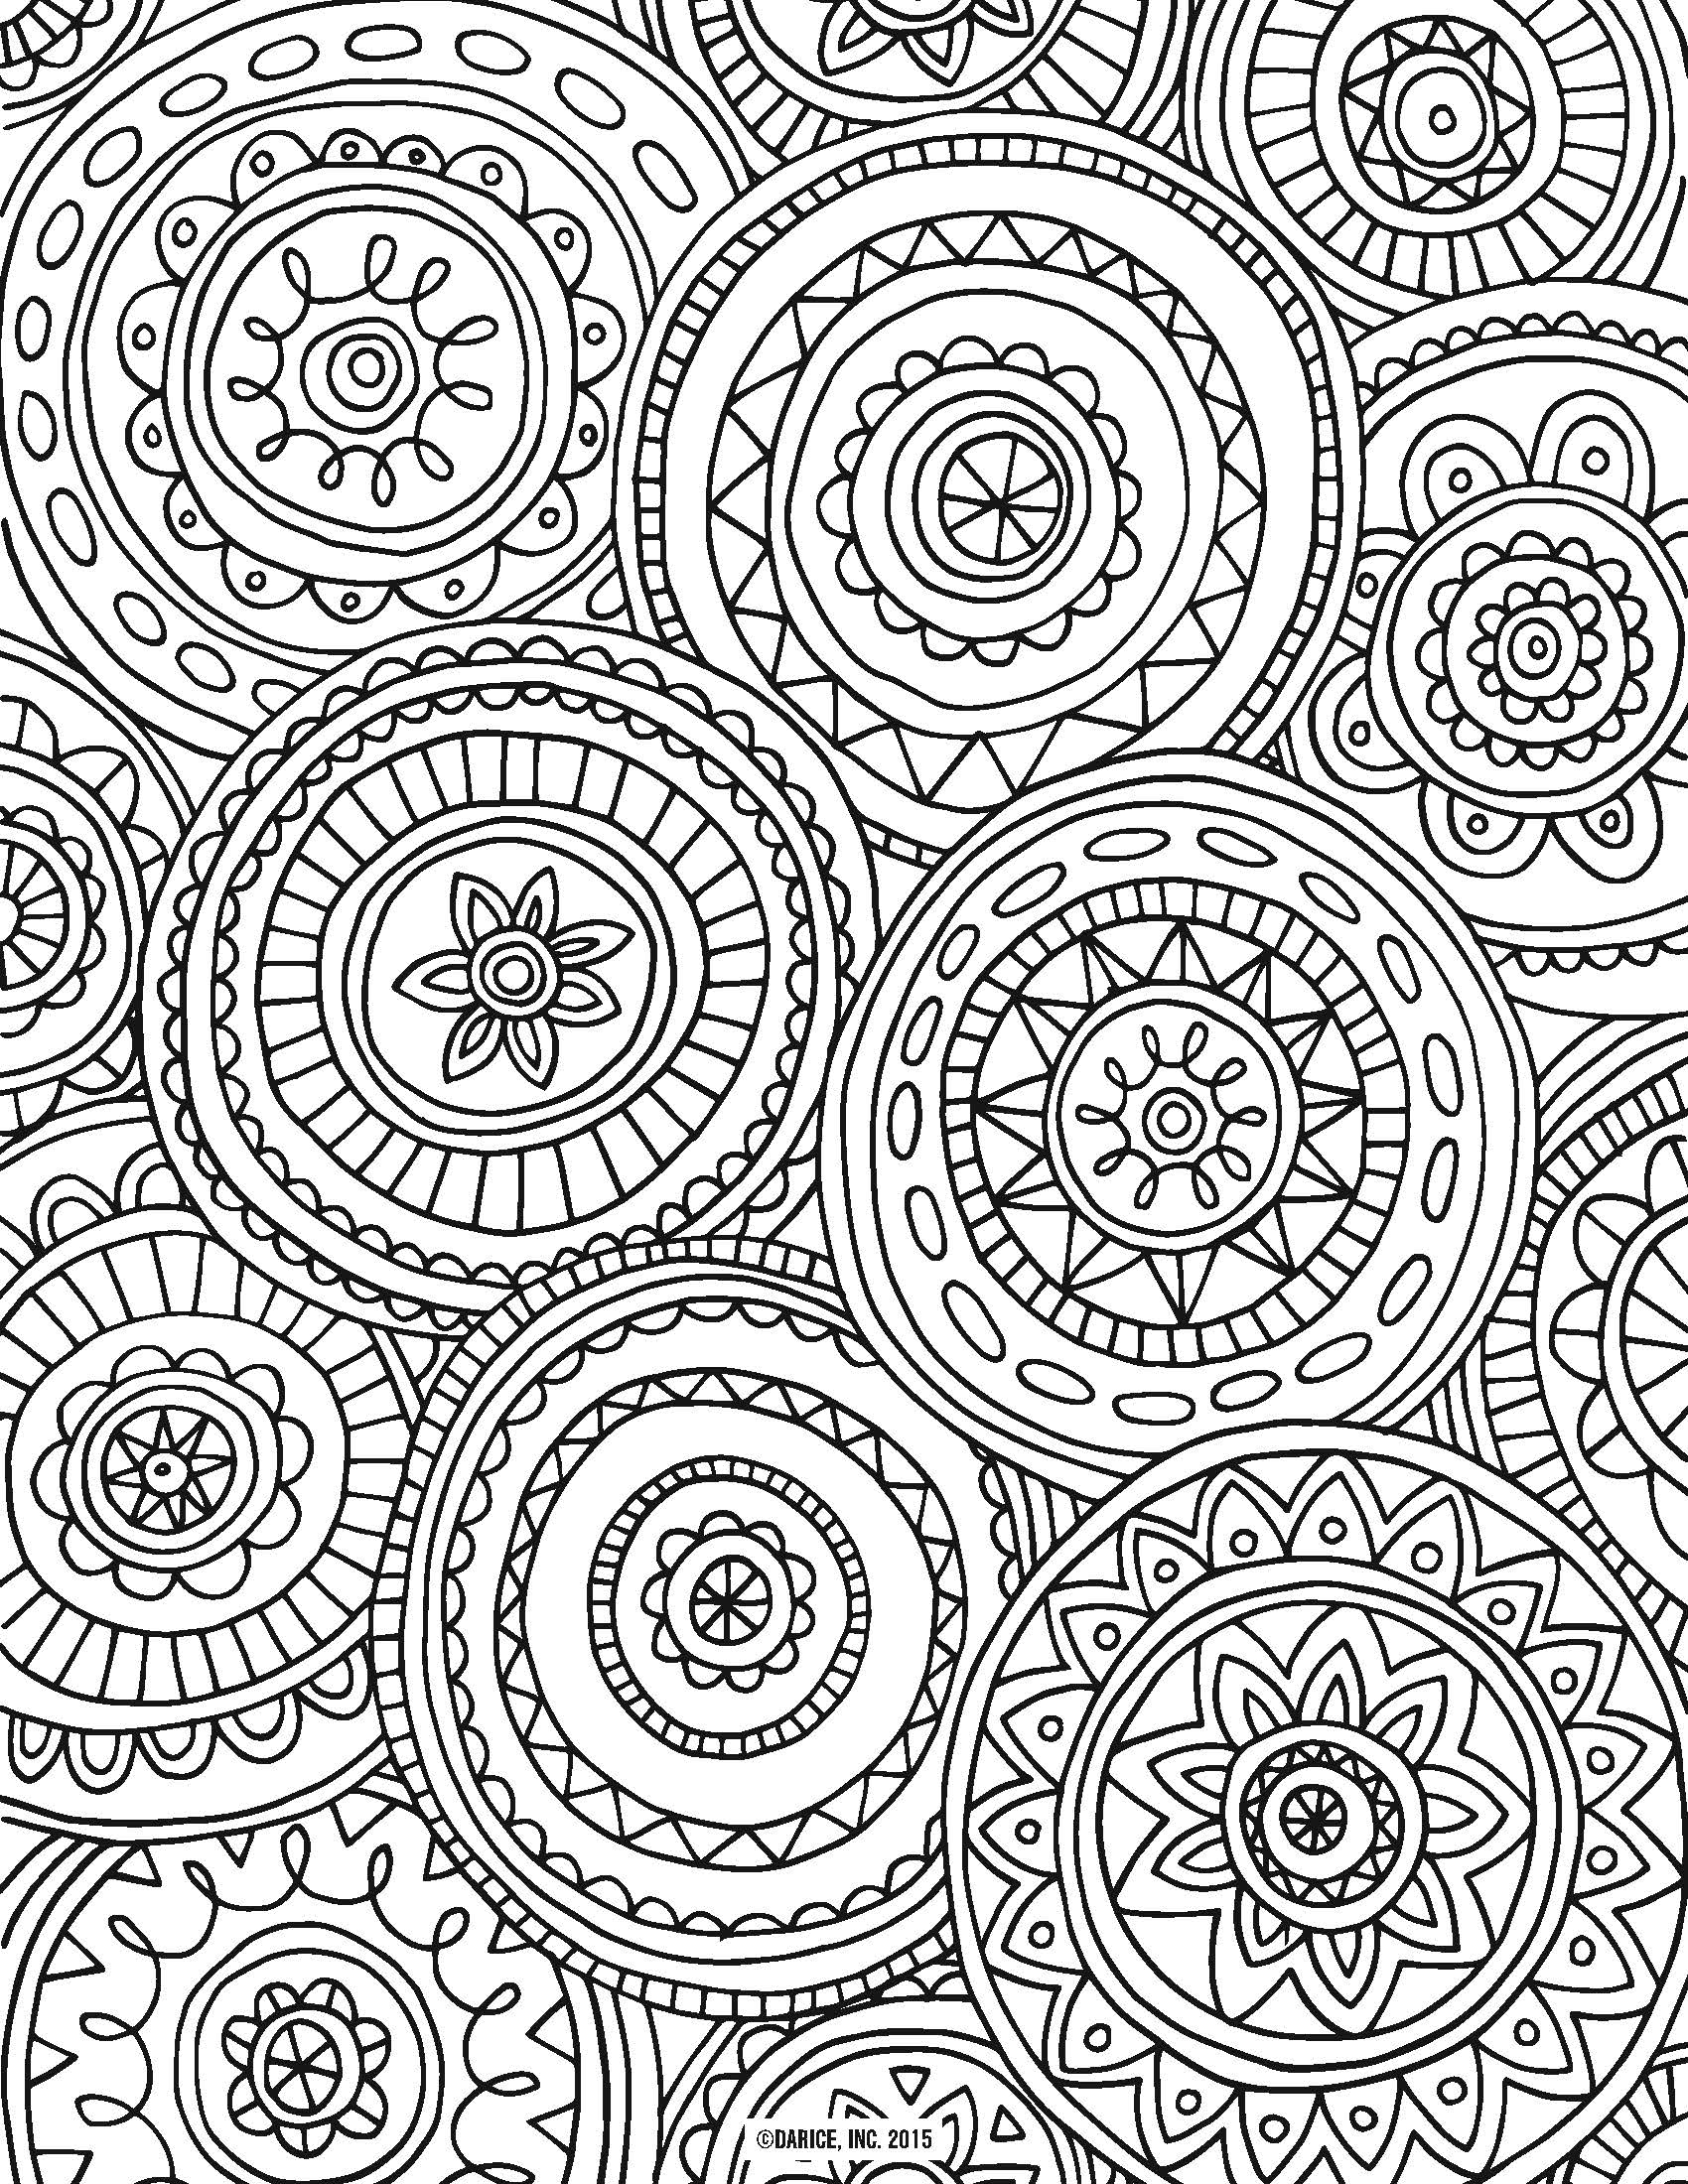 19 of the best colouring pages free printables for everyone - Printable Coloring Books For Adults